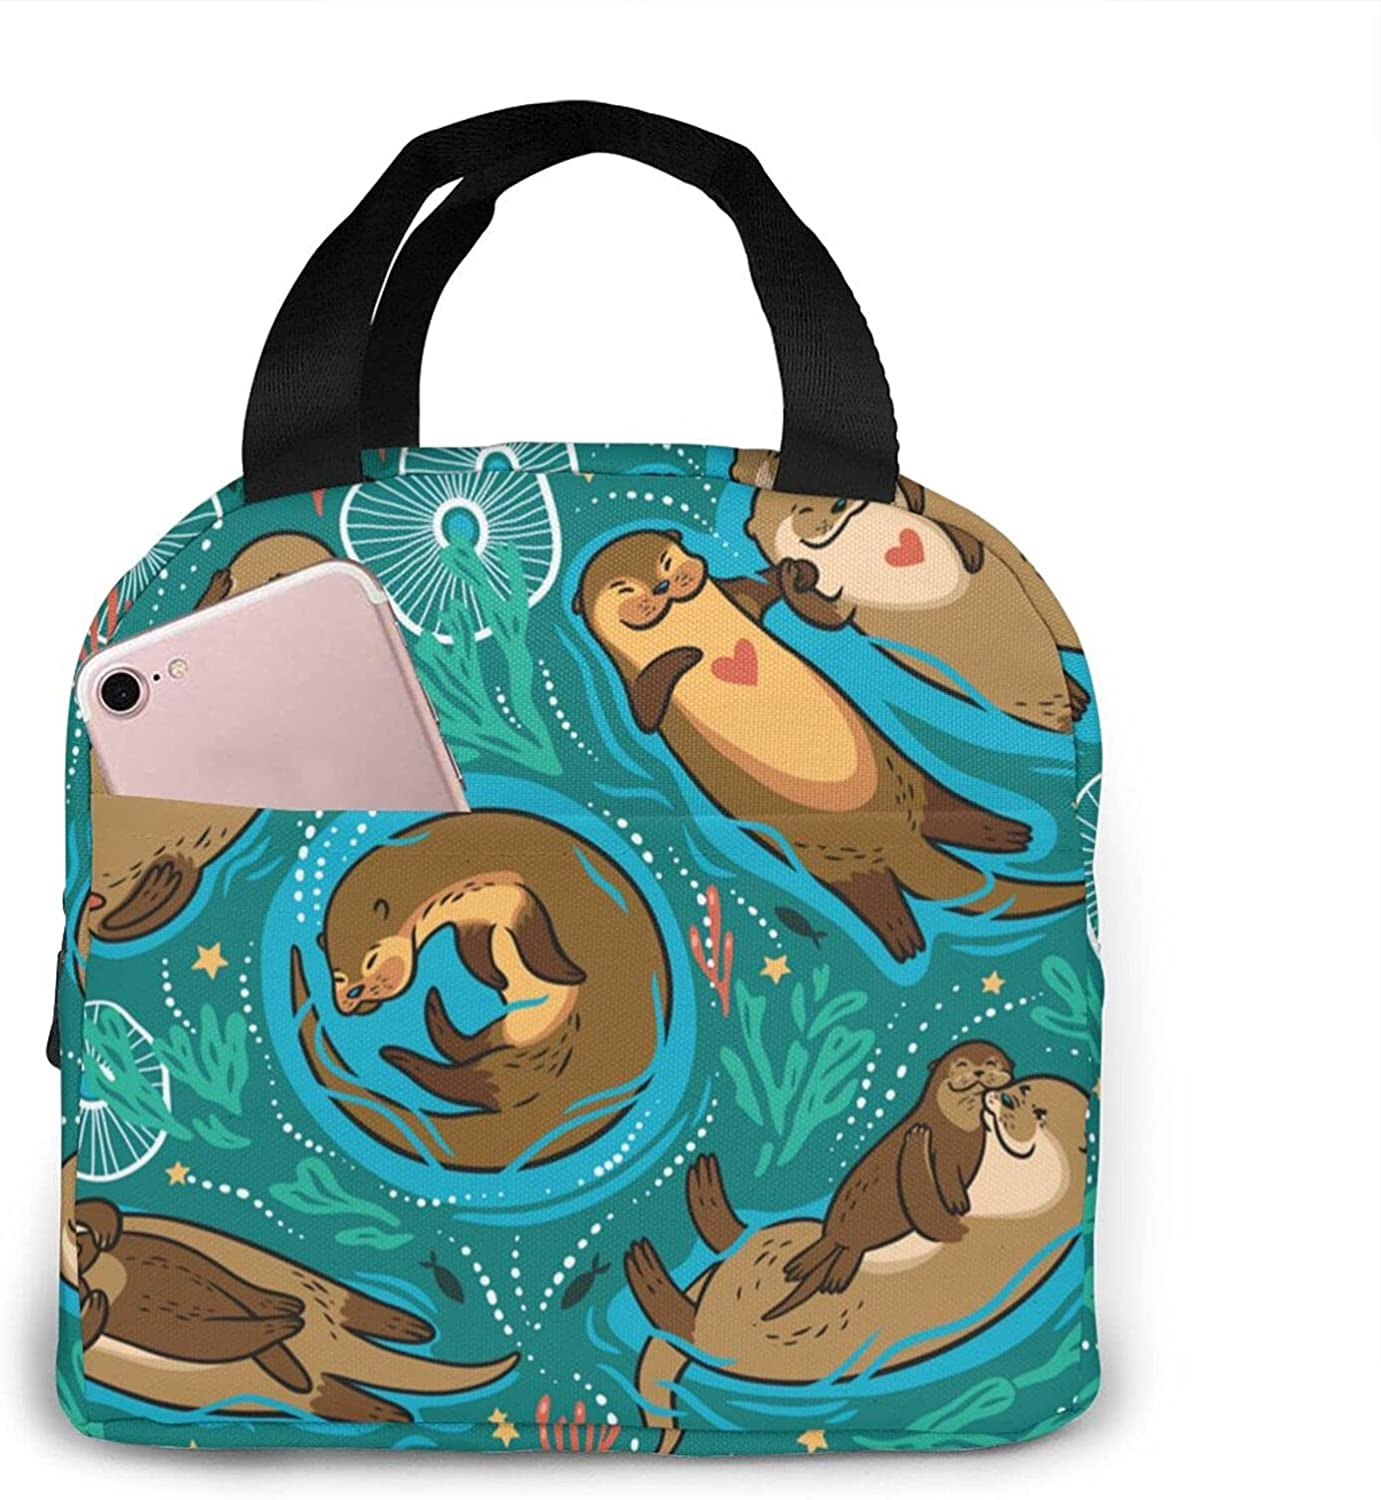 NAOINGEI Max 82% OFF Cute Lovely Otters0 Reusable Cooler Insulated Free Shipping New Bag Lunch